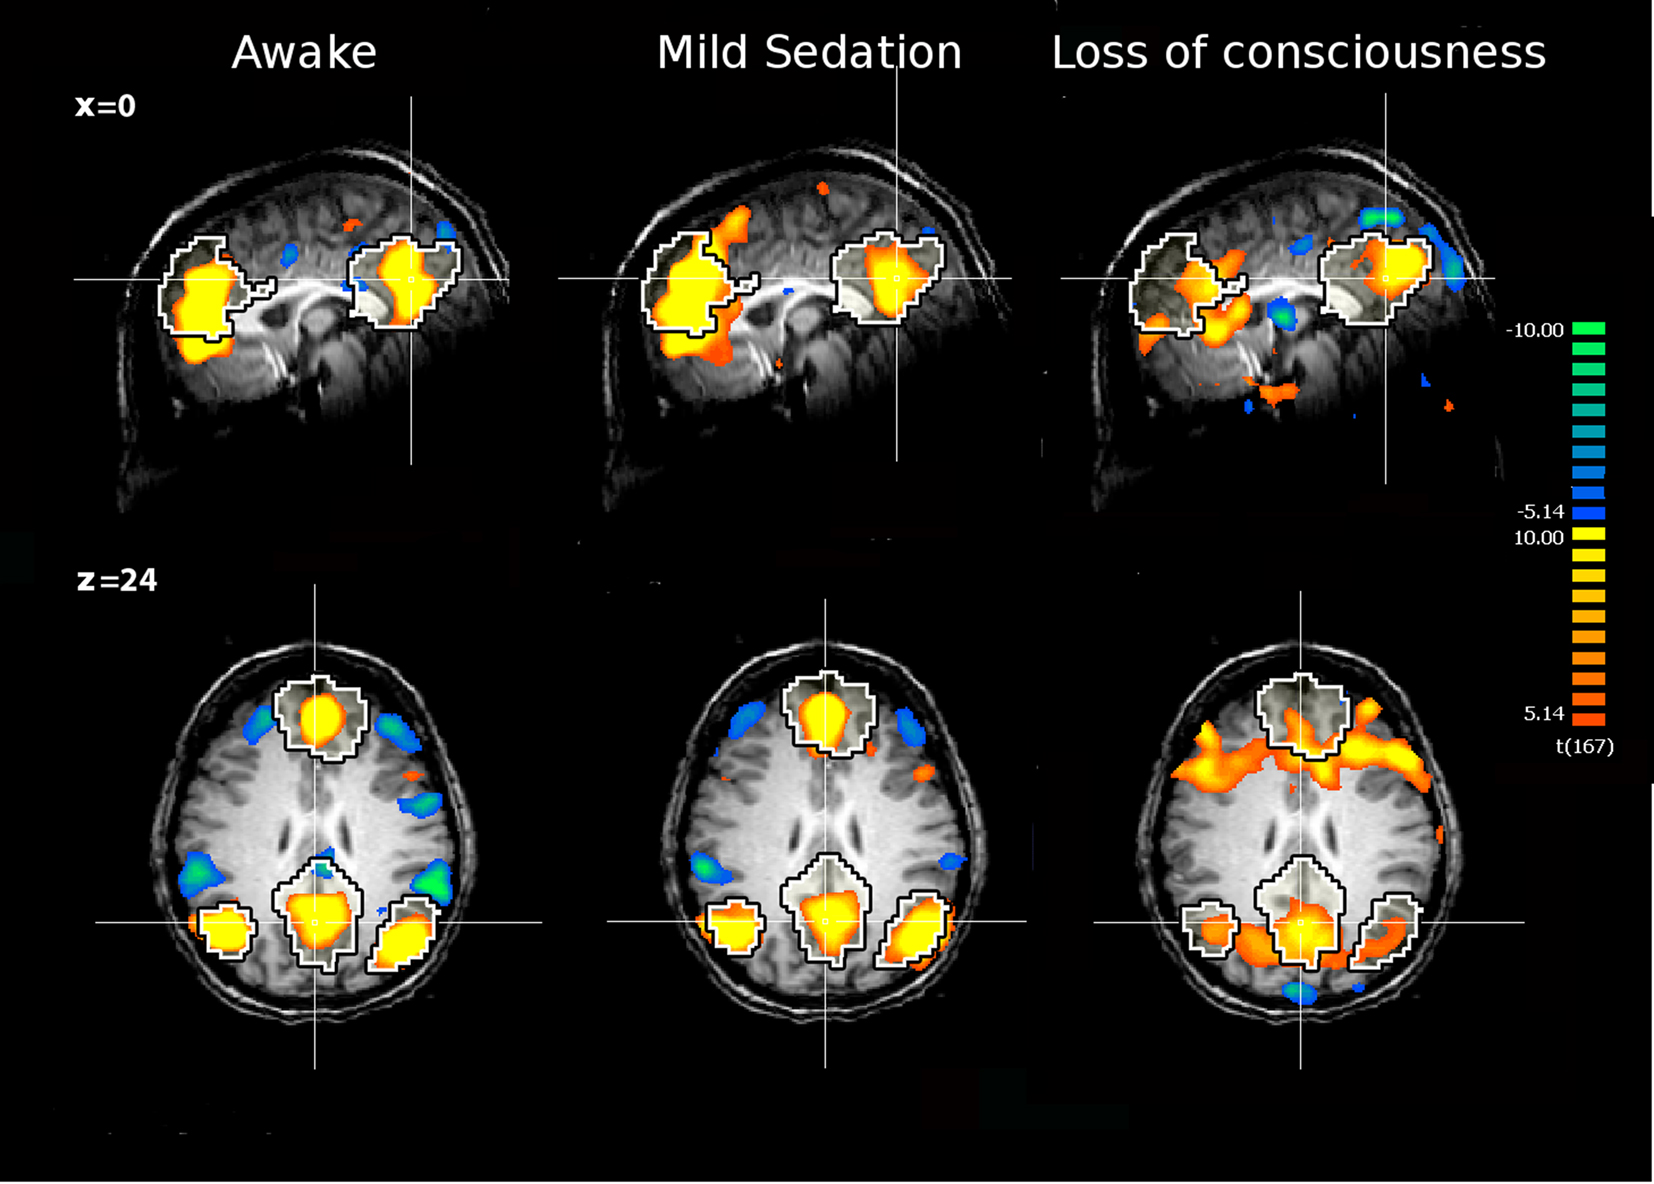 Induced coma brain activity